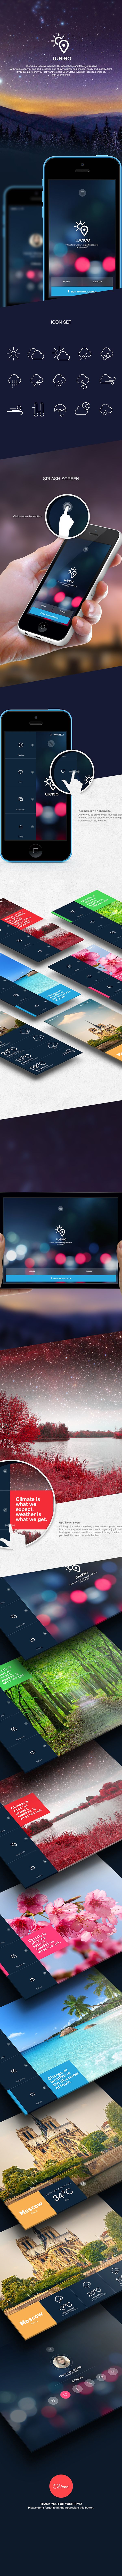 weleo | Weather and Location by Shiraz Shrairi, via Behance